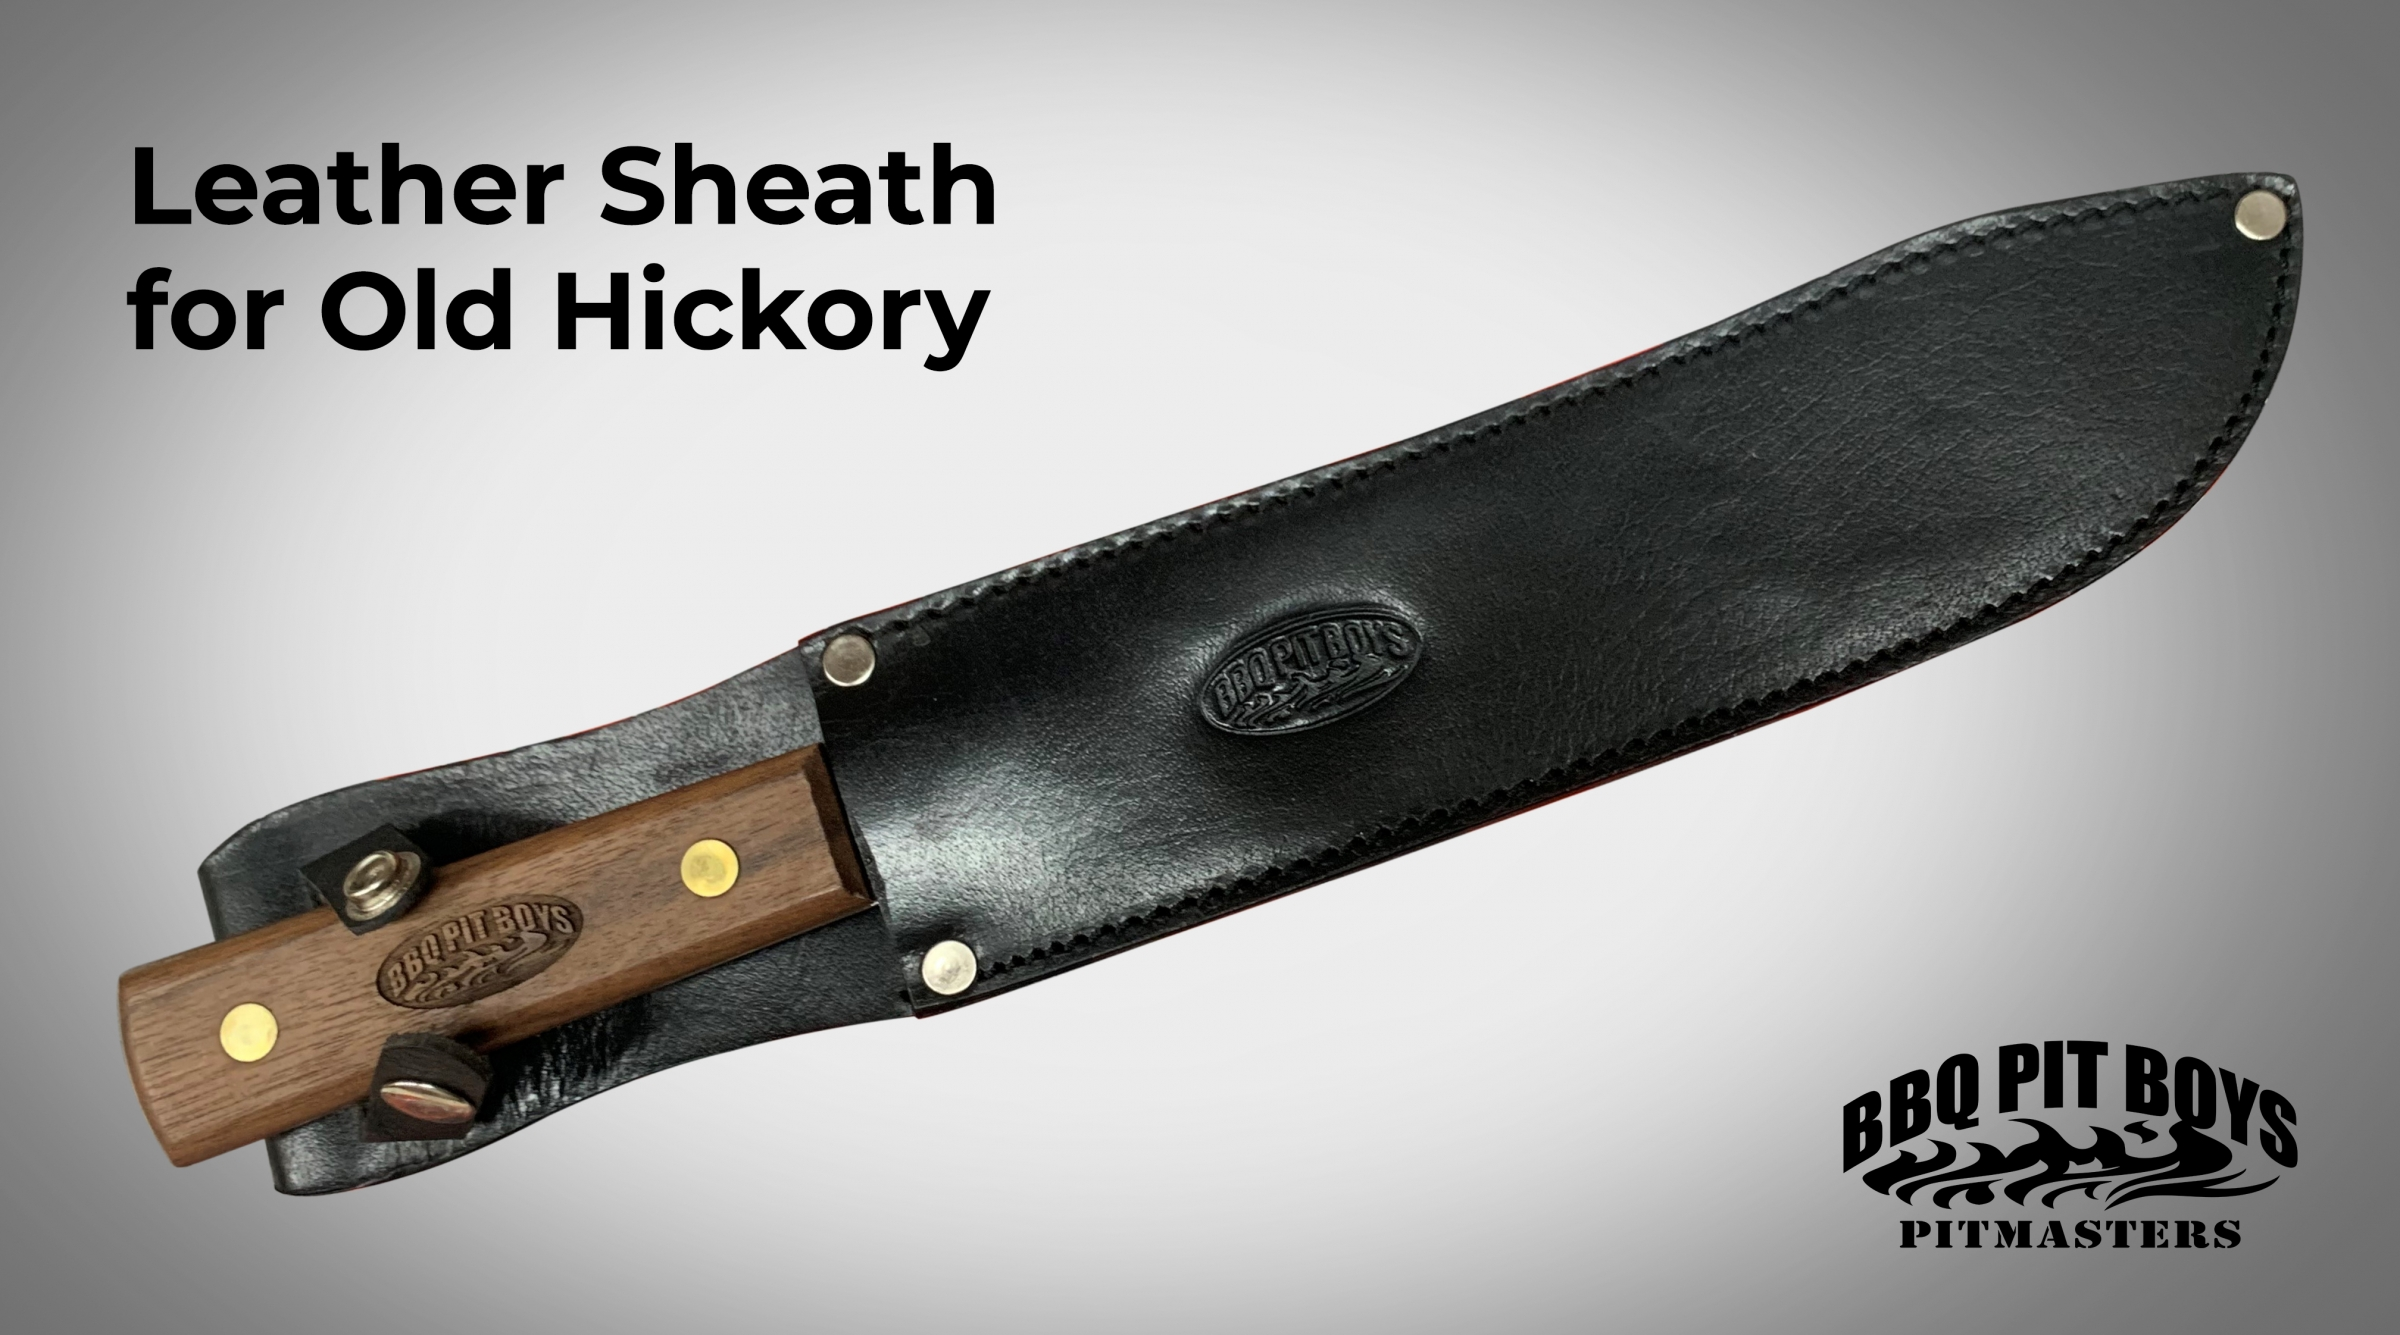 10 Inch Old hickory Sheath